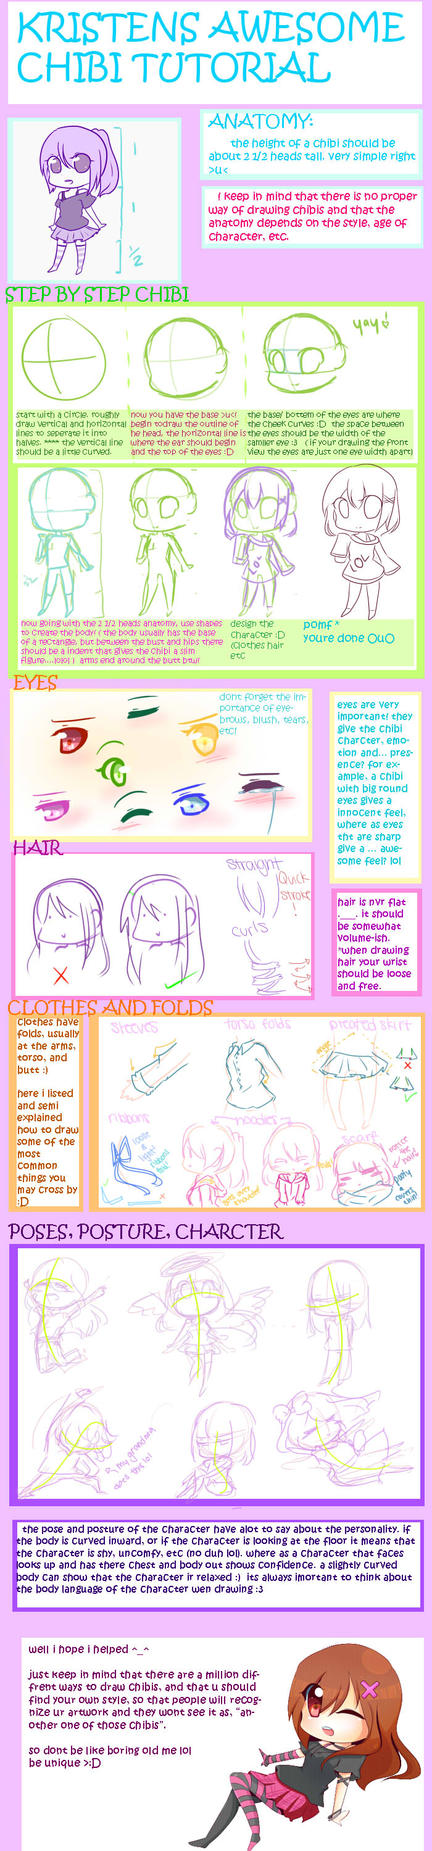 AWESOME CHIBI TUTORIAL by Rmblee